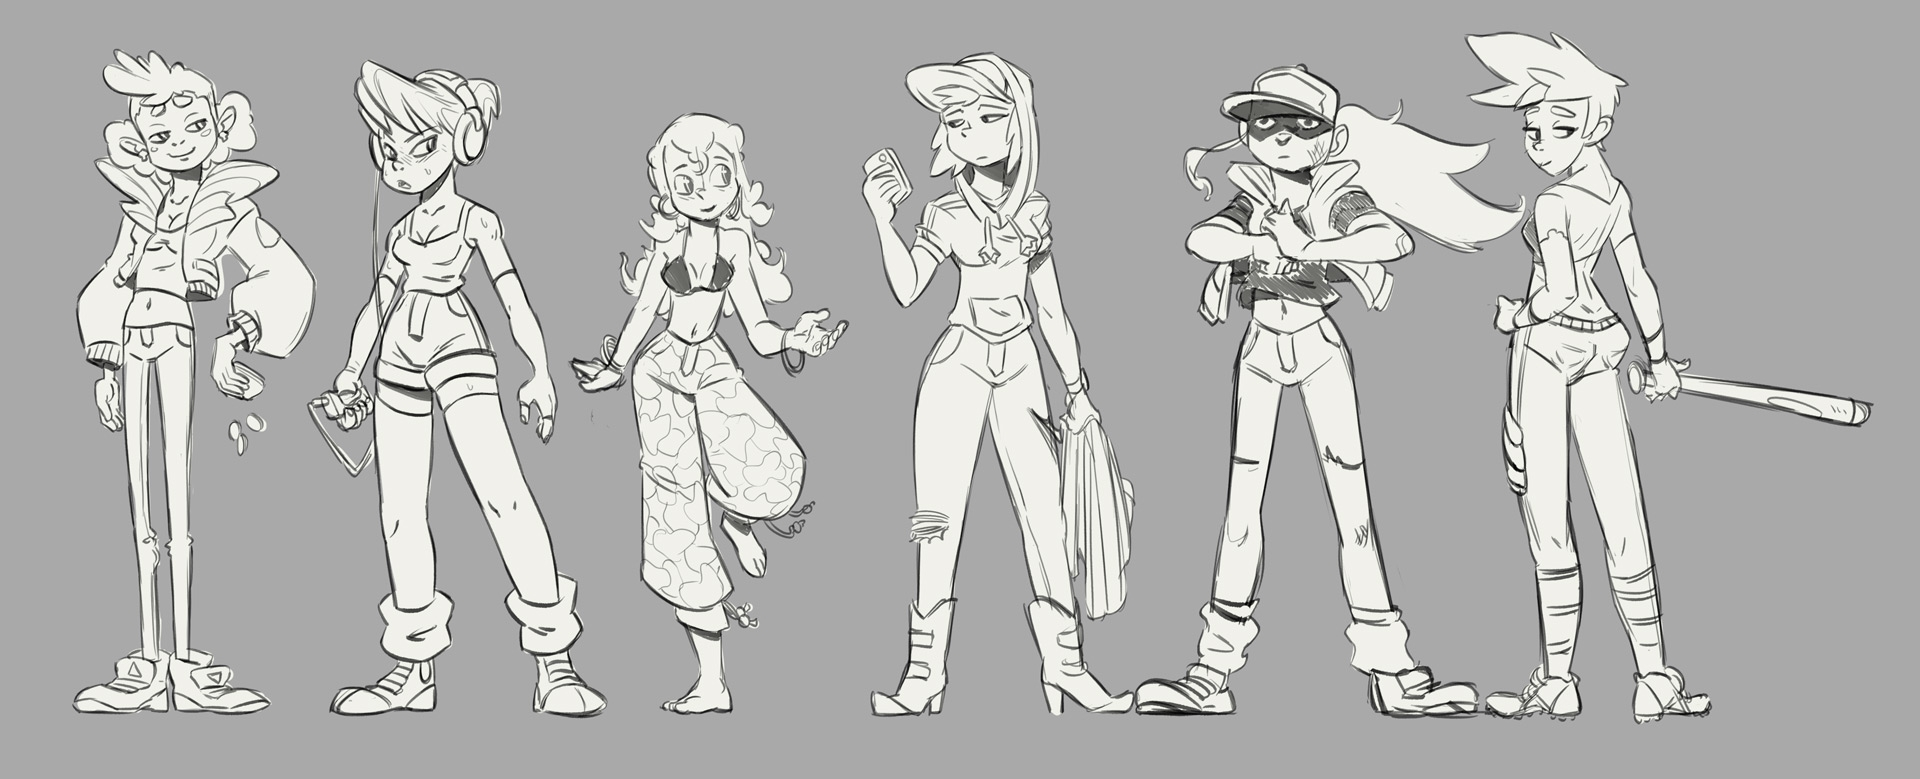 girls sketches - characterdesign - emanuelearnaldi | ello